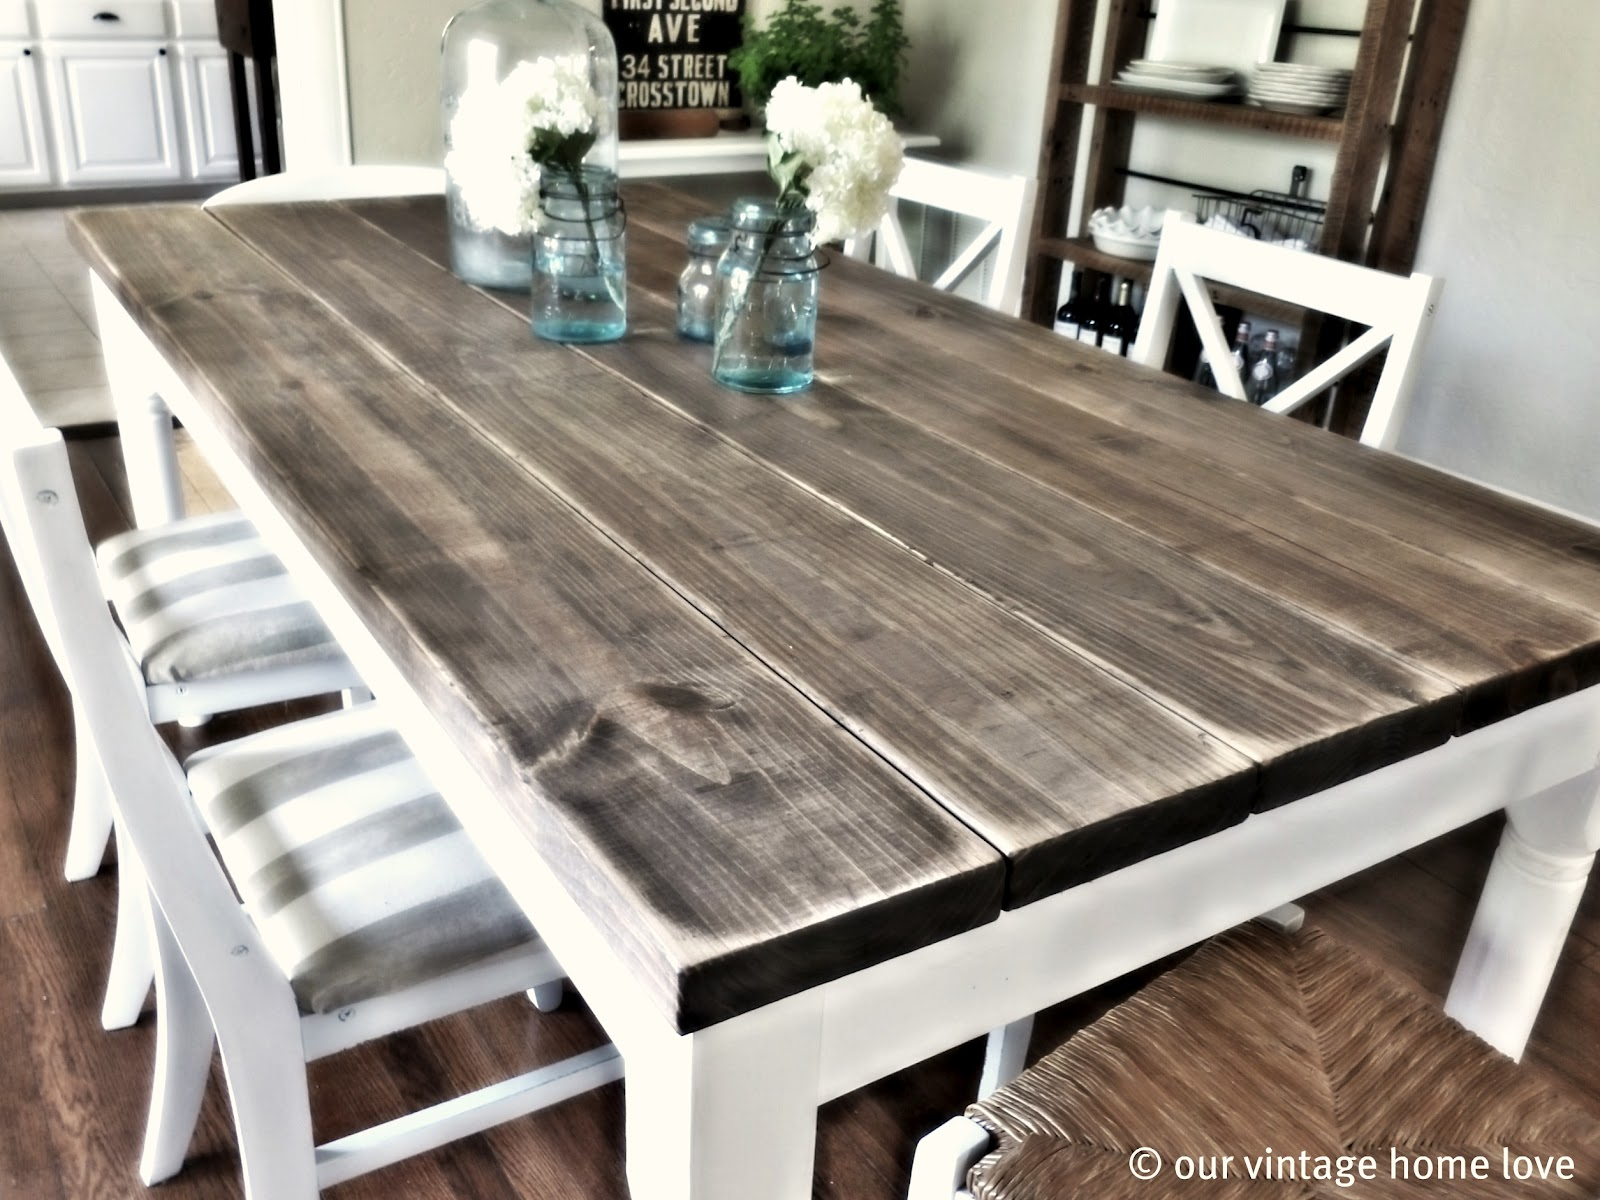 Amazing Vintage Home Love Dining Room Table Tutorial Interior Design Ideas Truasarkarijobsexamcom